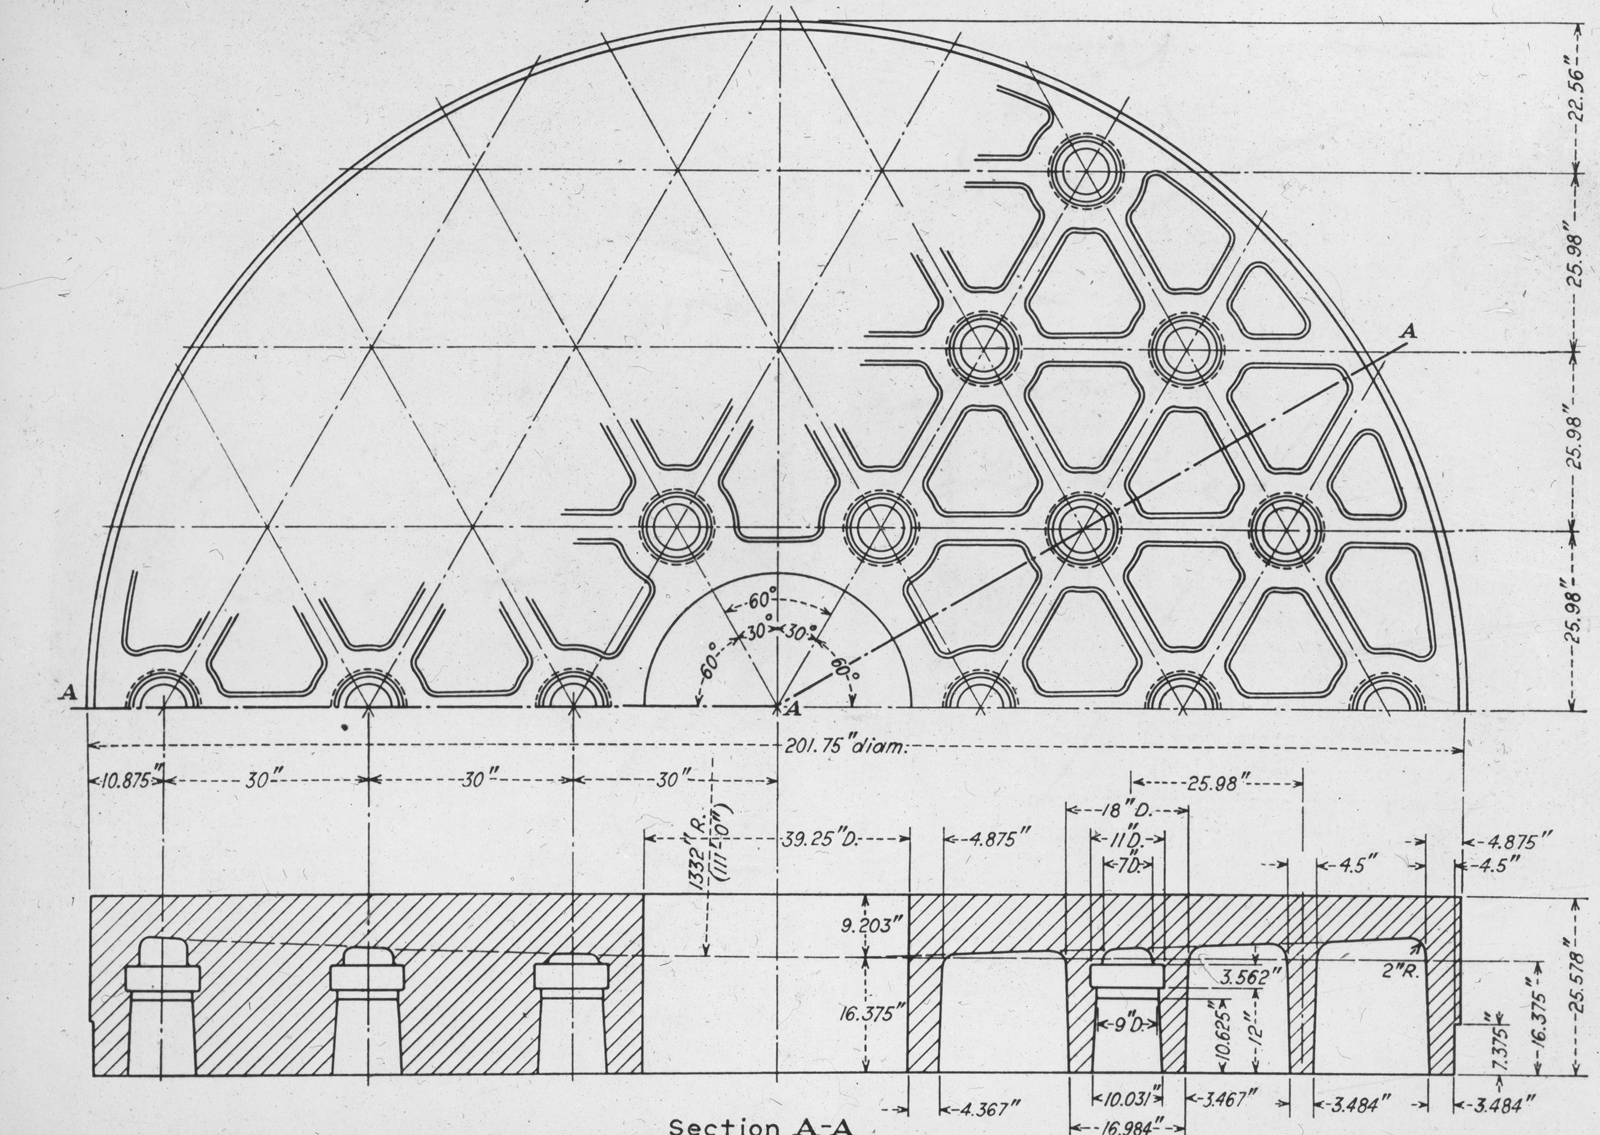 Plan View and Cross Section of Mirror